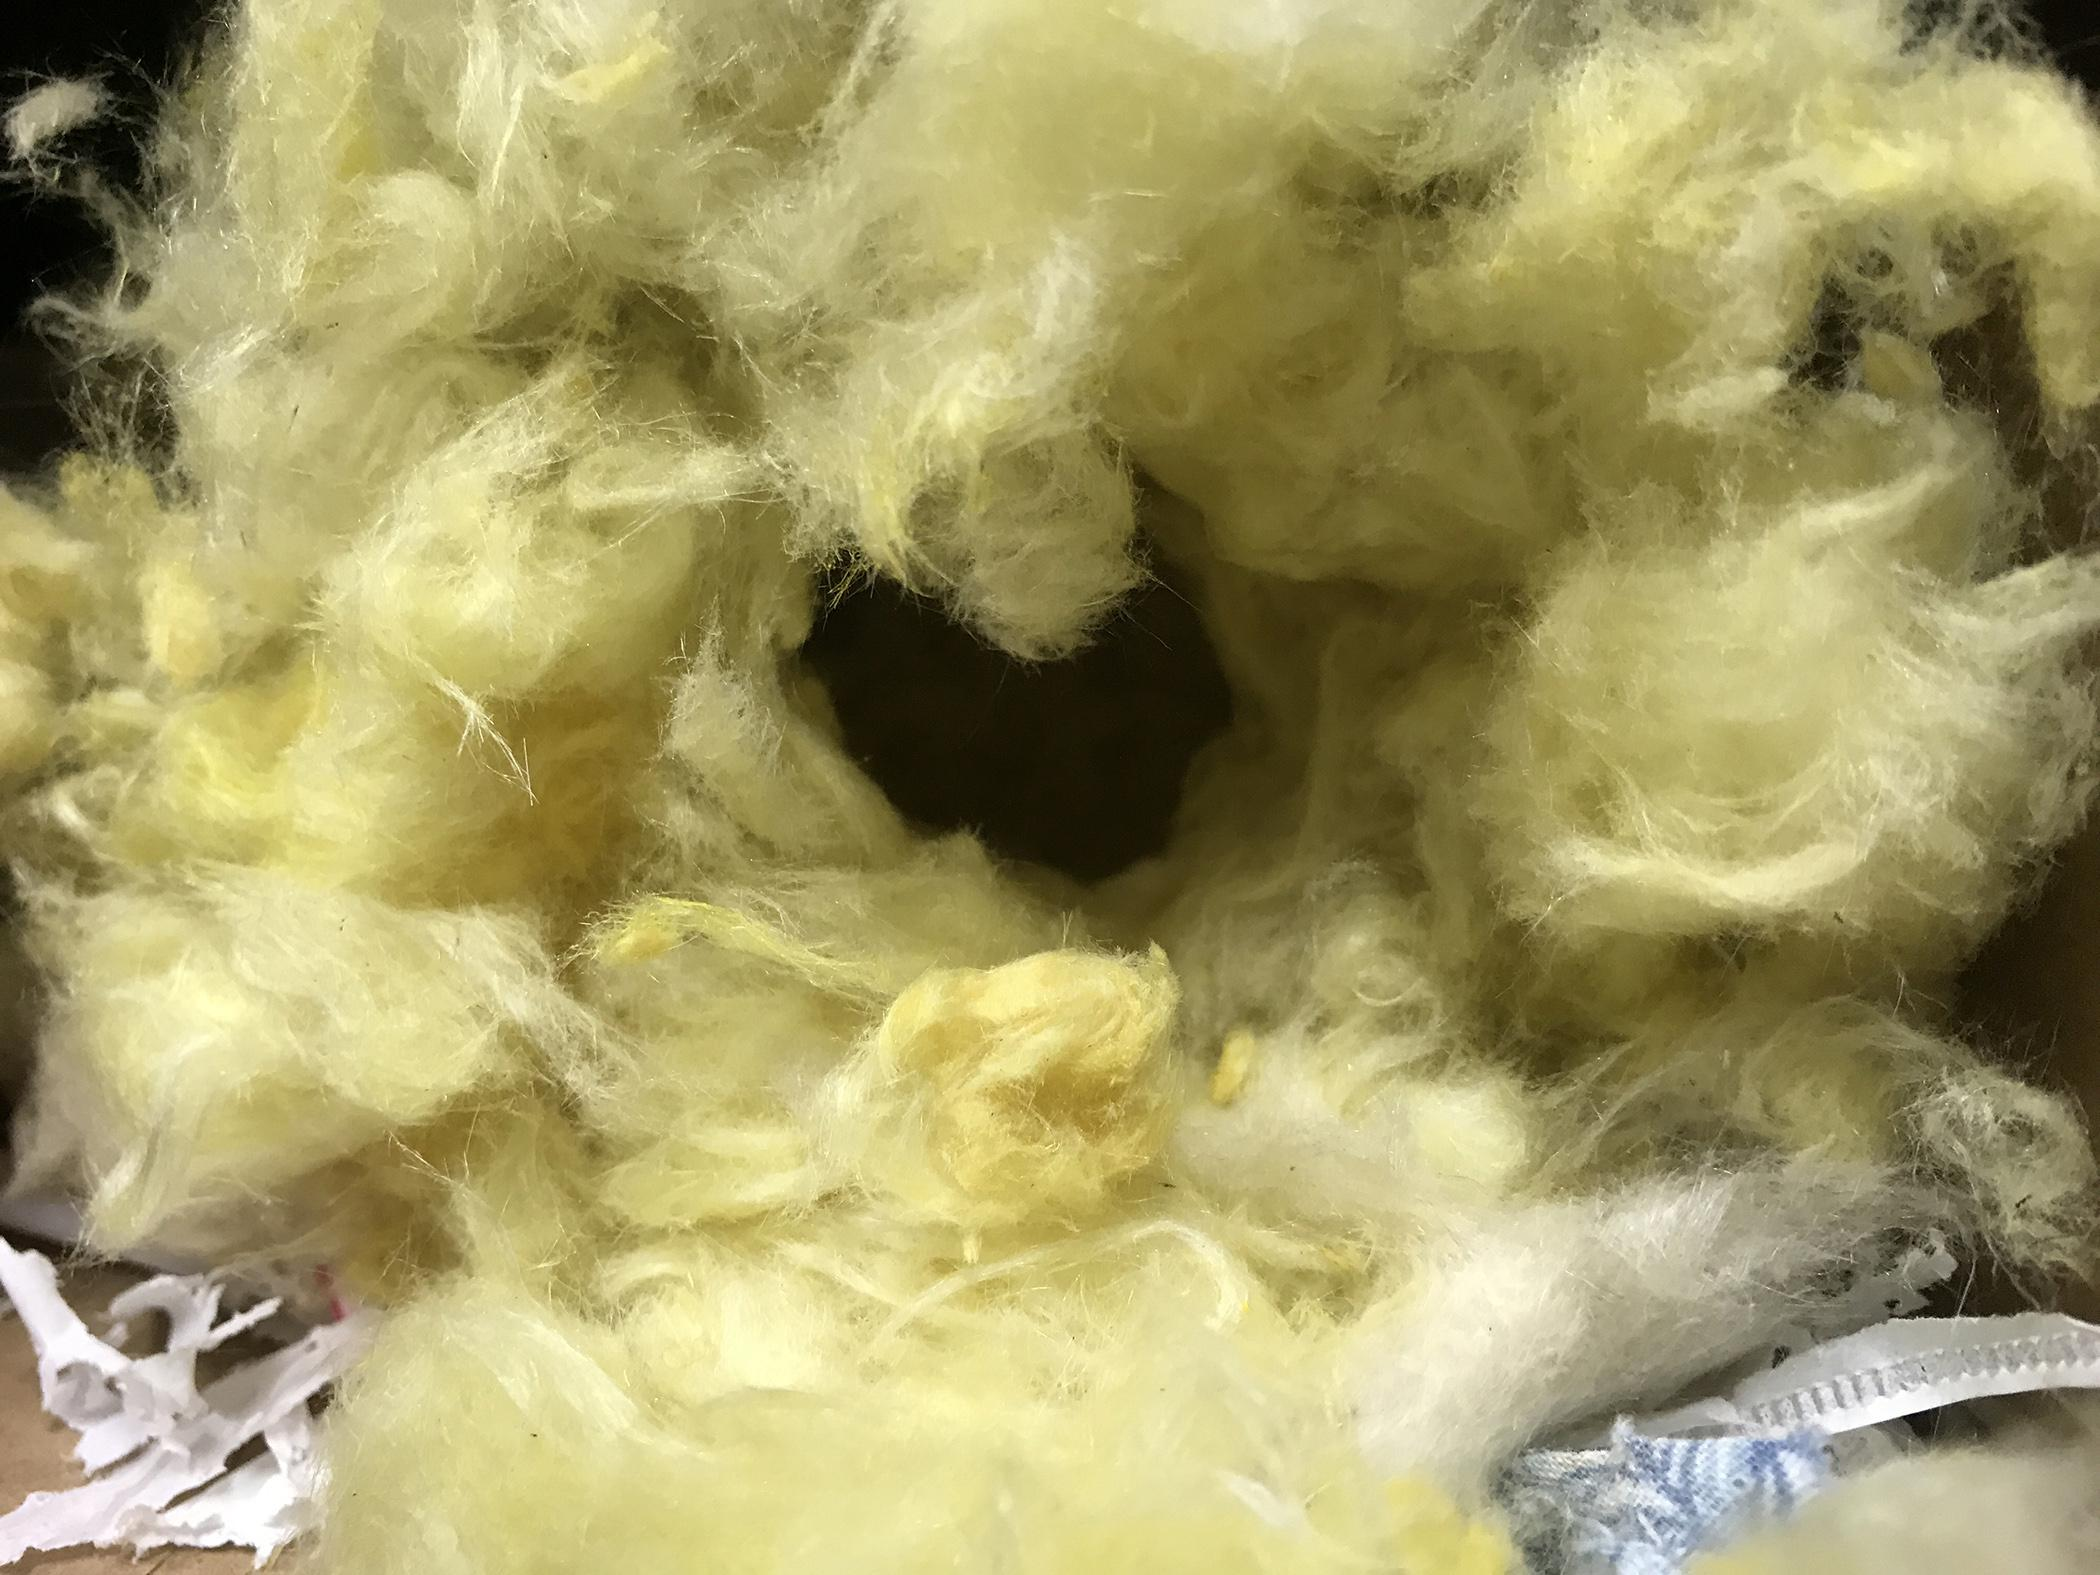 a nest built by mice using insulation and a variety of other materials